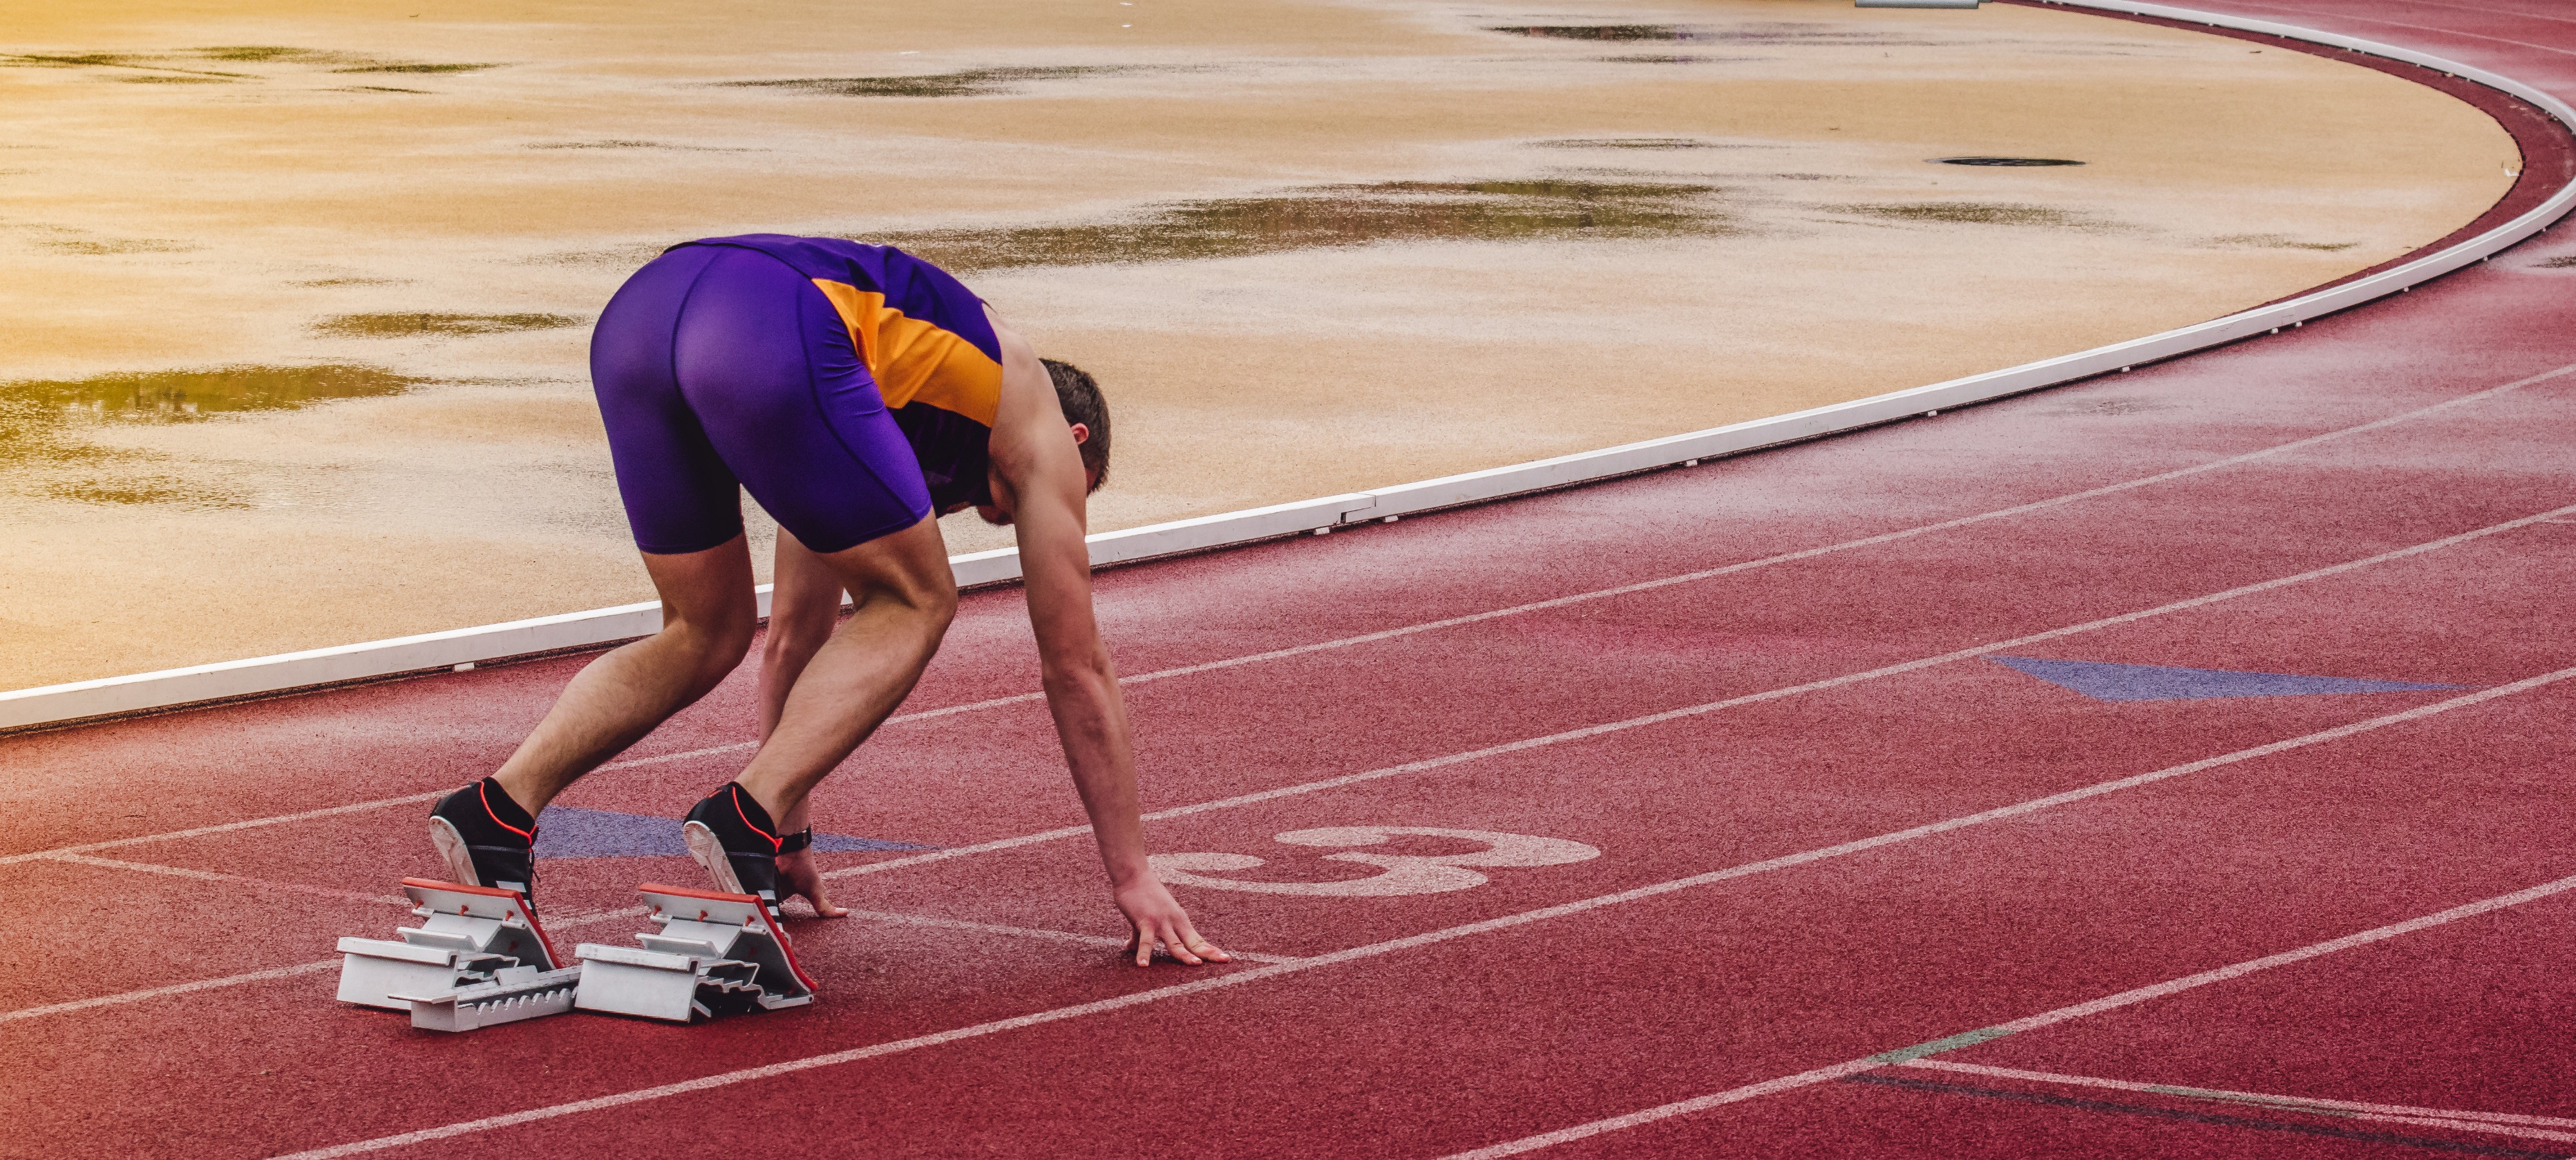 A man getting ready for a race.